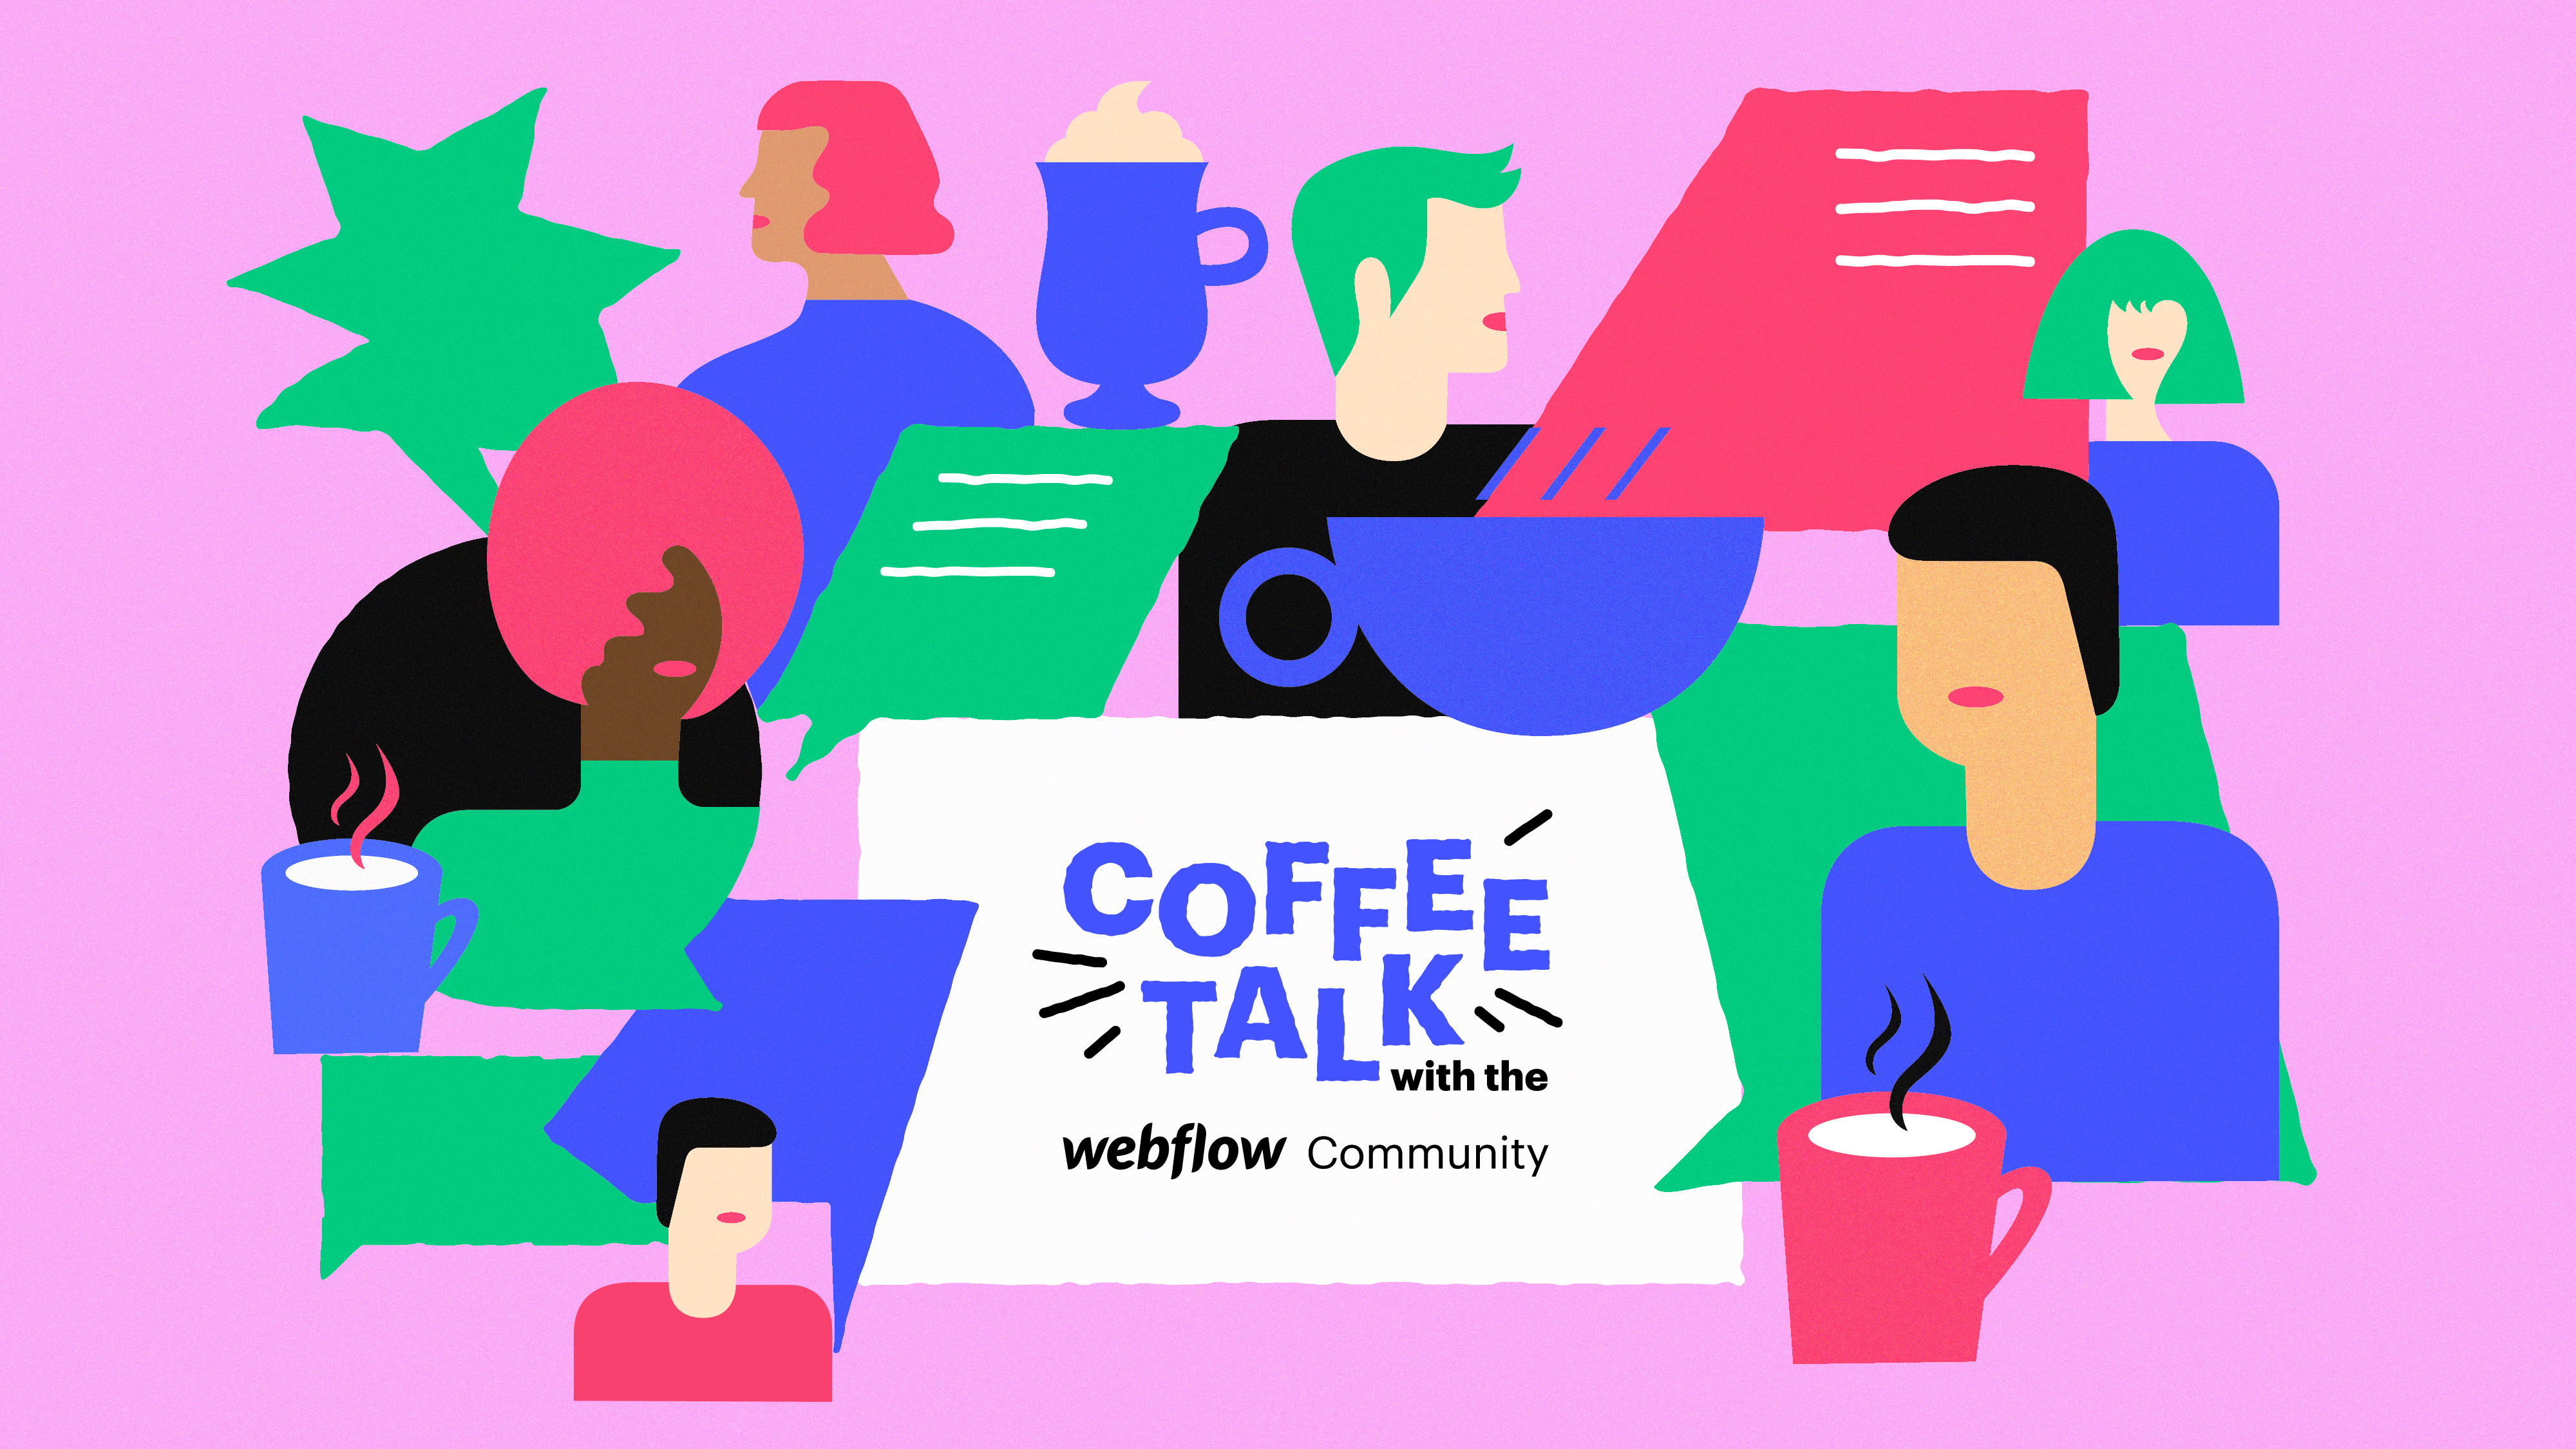 Coffee Talk with the Webflow Community